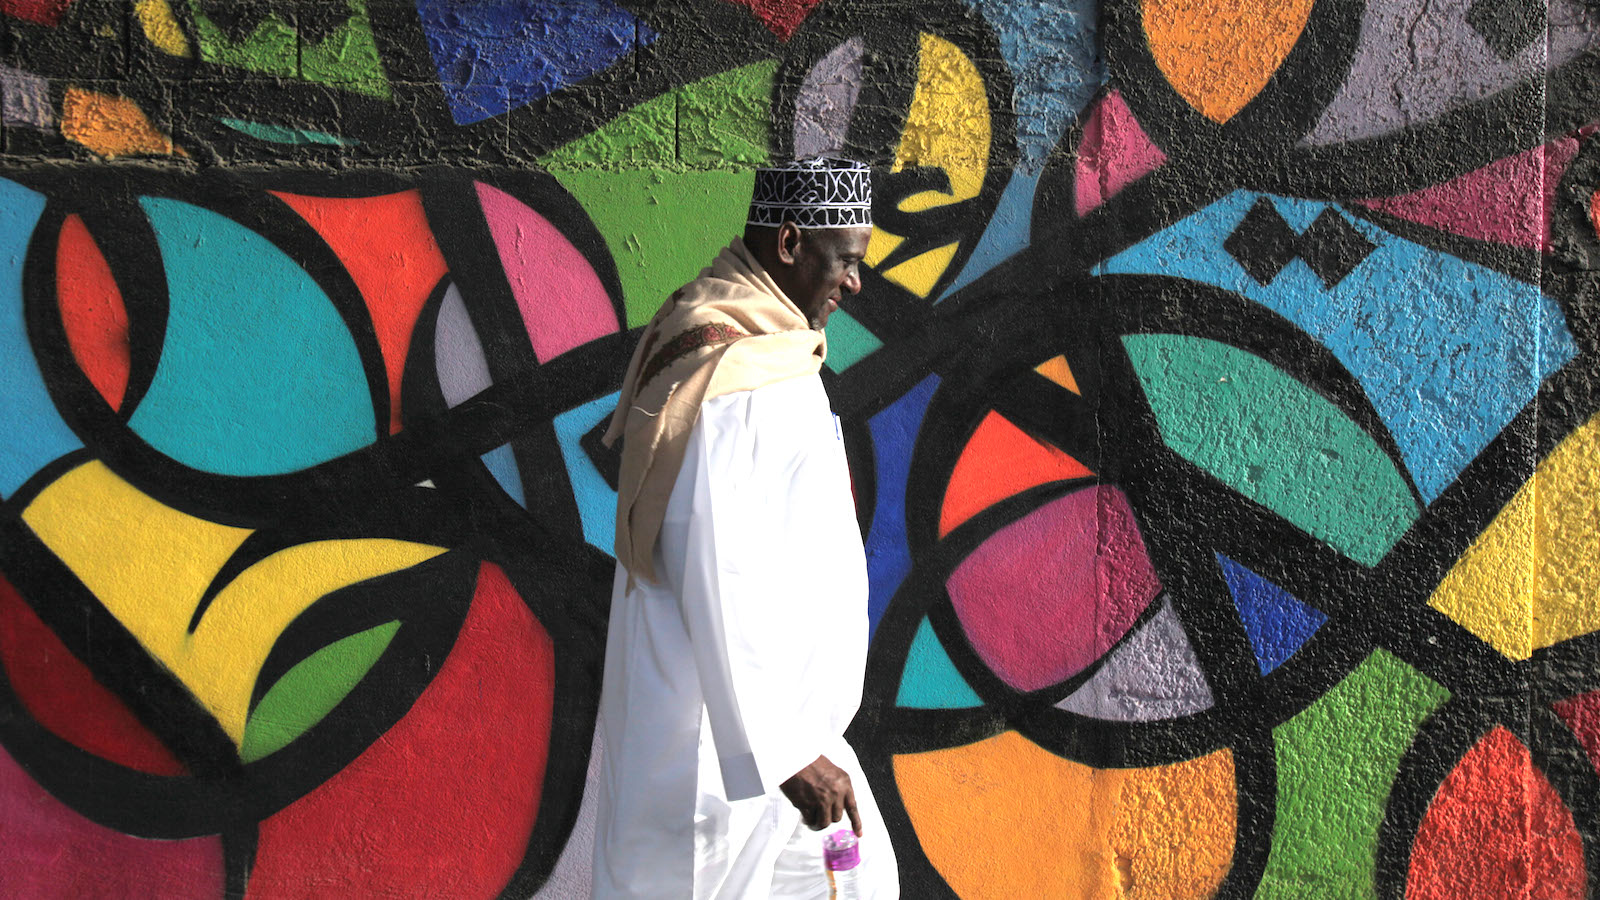 A man walks by a graffiti on a wall in the old city of Jeddah, Saudi Arabia, Friday, May 9, 2014. Jeddah has been a traditional hub for commerce along the Red Sea and the port of entry for many Muslims traveling to Mecca to perform the religious obligations for the Hajj pilgrimage. Many Arab and African pilgrims years ago stayed in Jeddah, never returning to their home countries and many eventually melted into Saudi society. (AP Photo/Hasan Jamali)